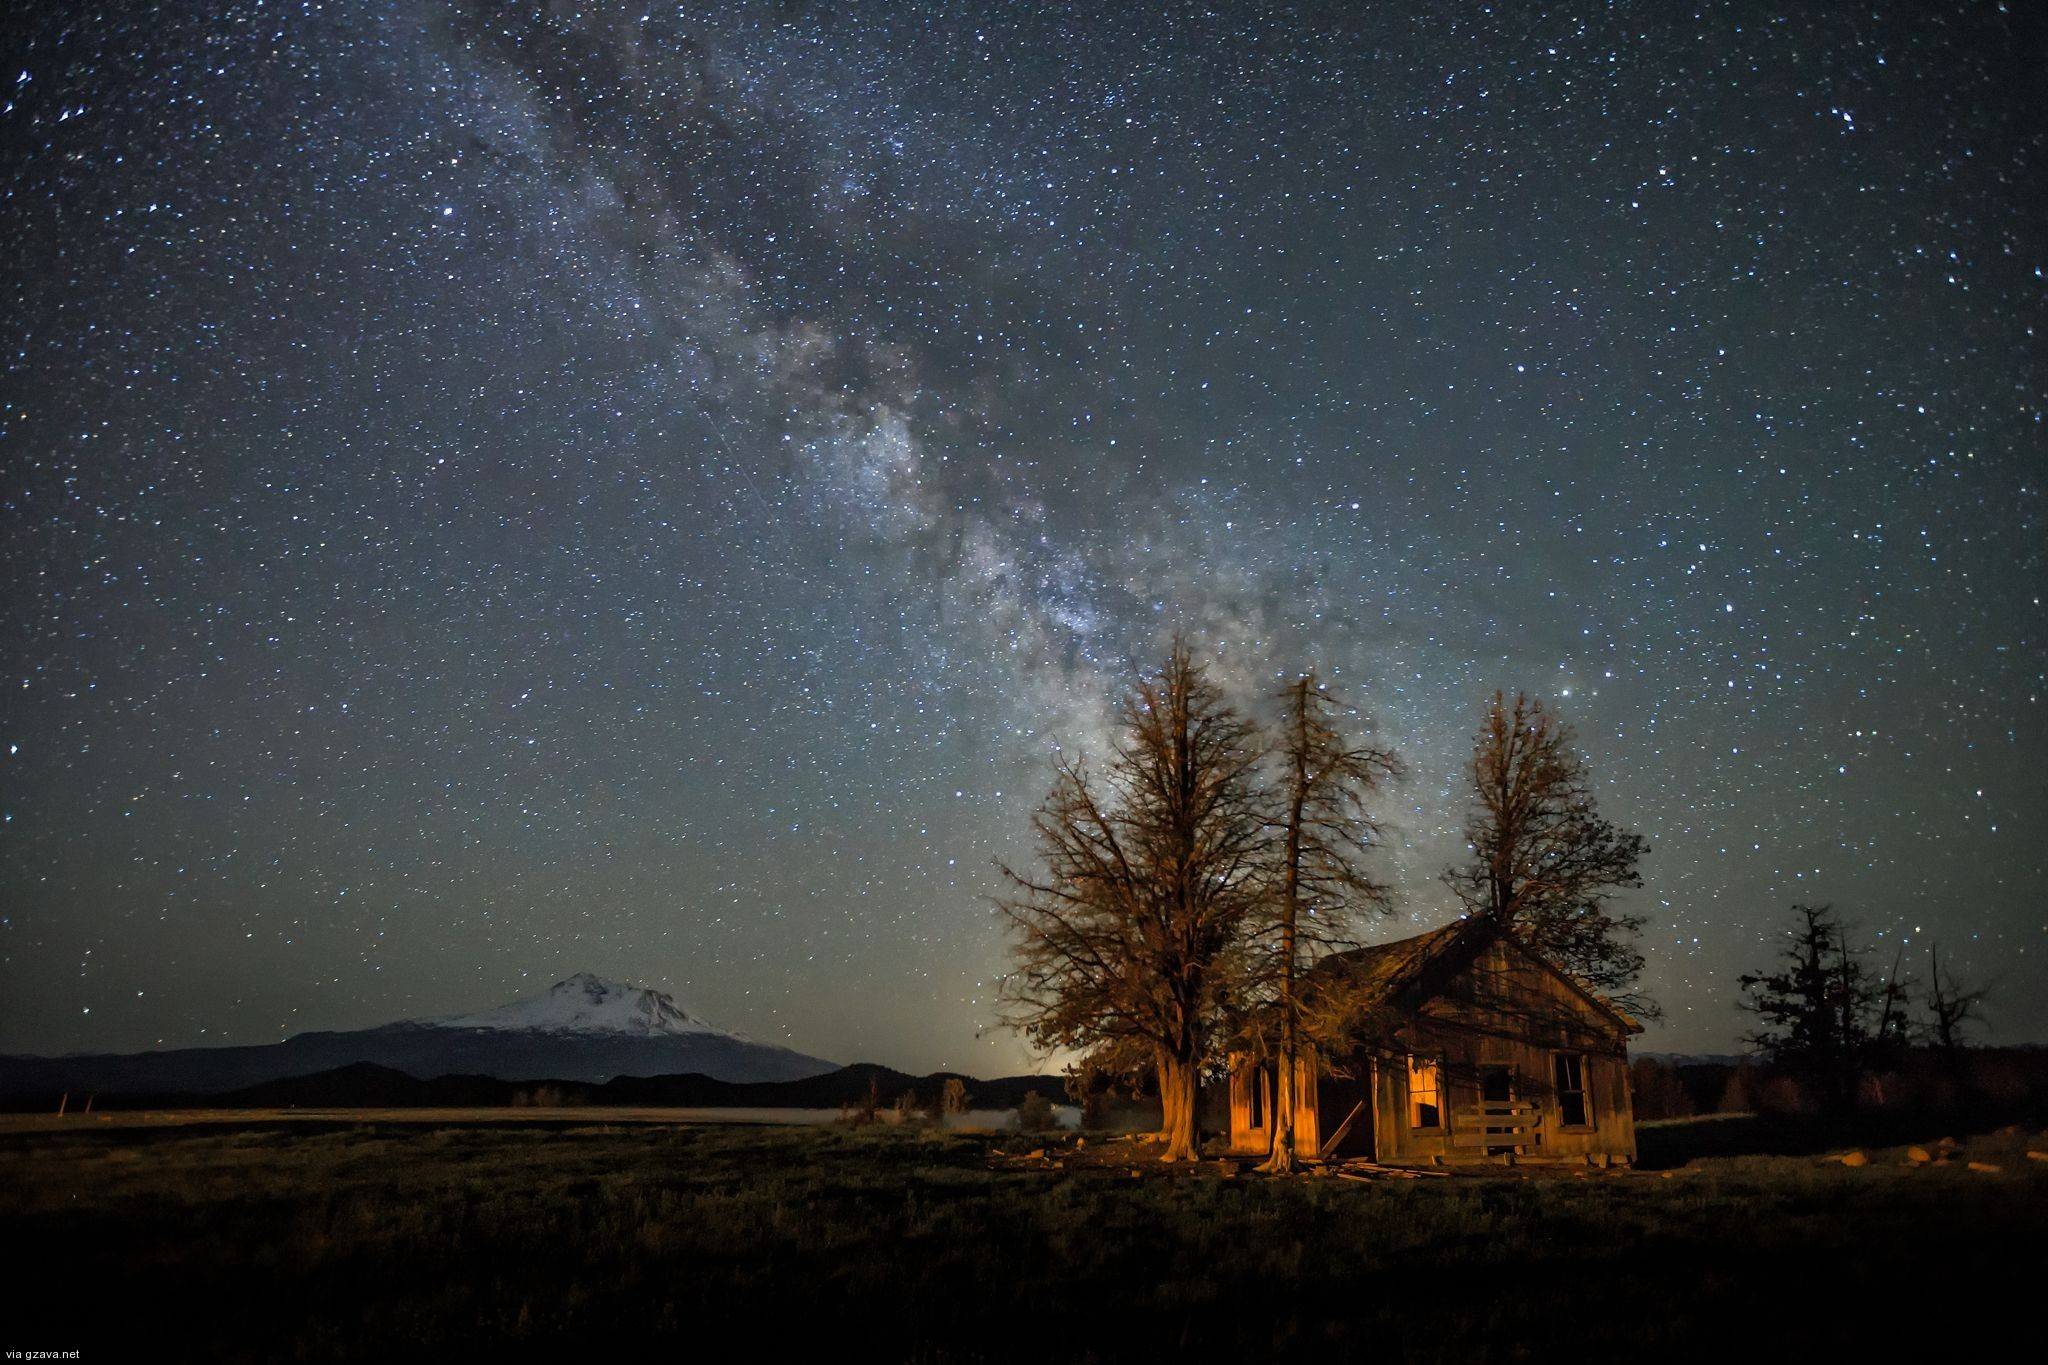 2048x1365 Starry Night Skies Photography